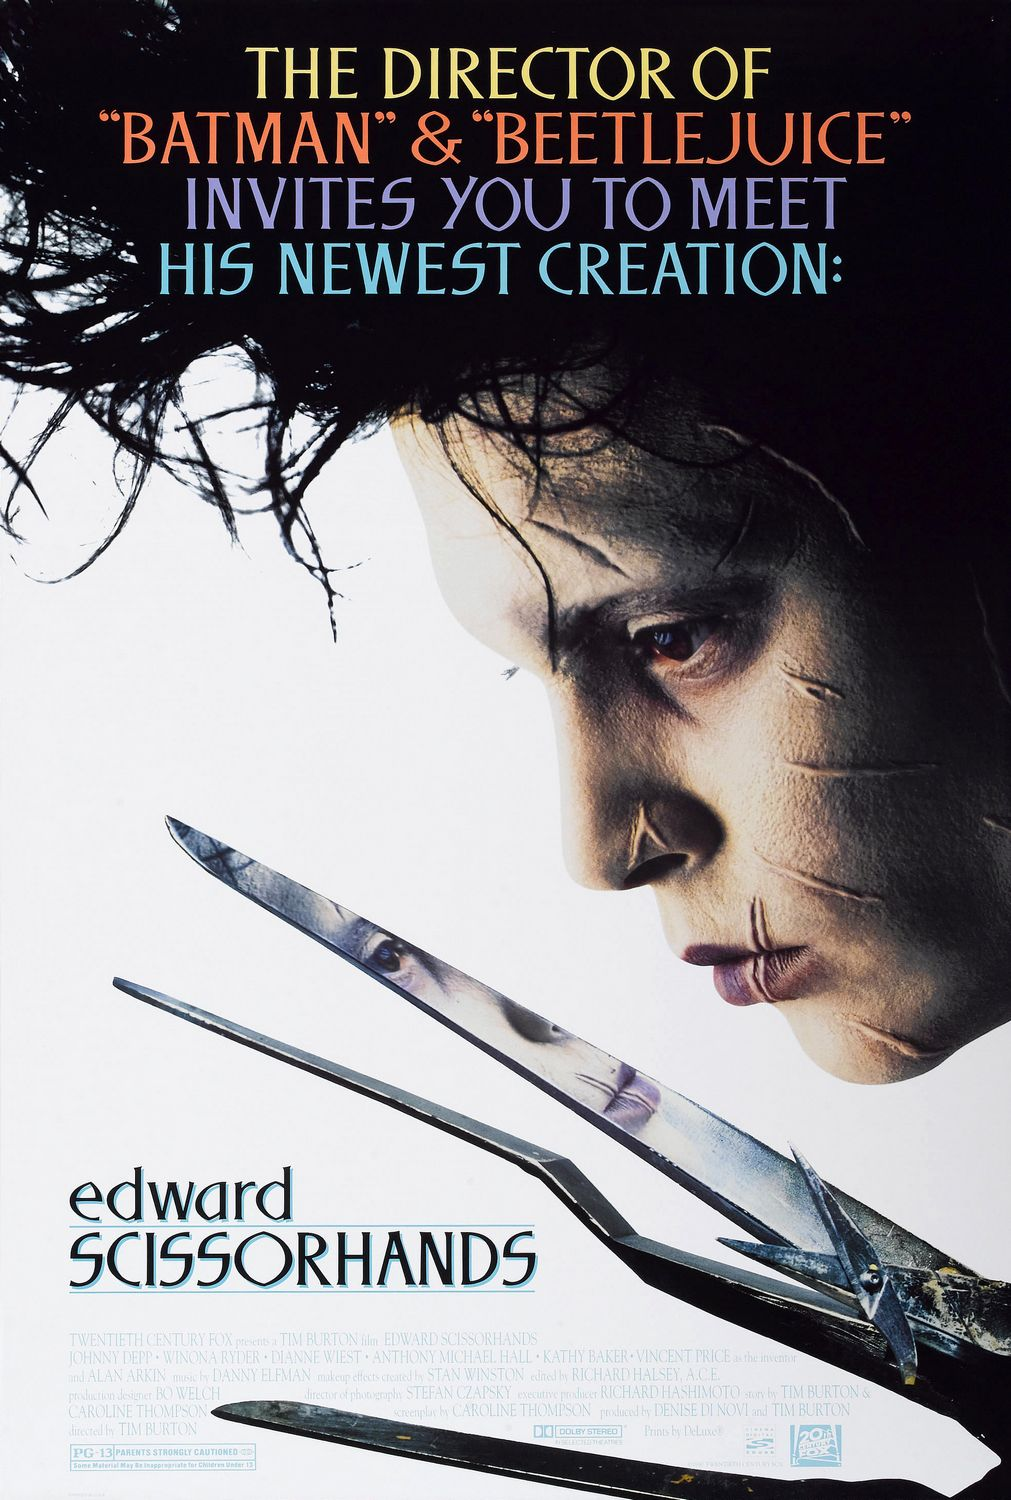 Open Air Screening of Edward Scissorhands